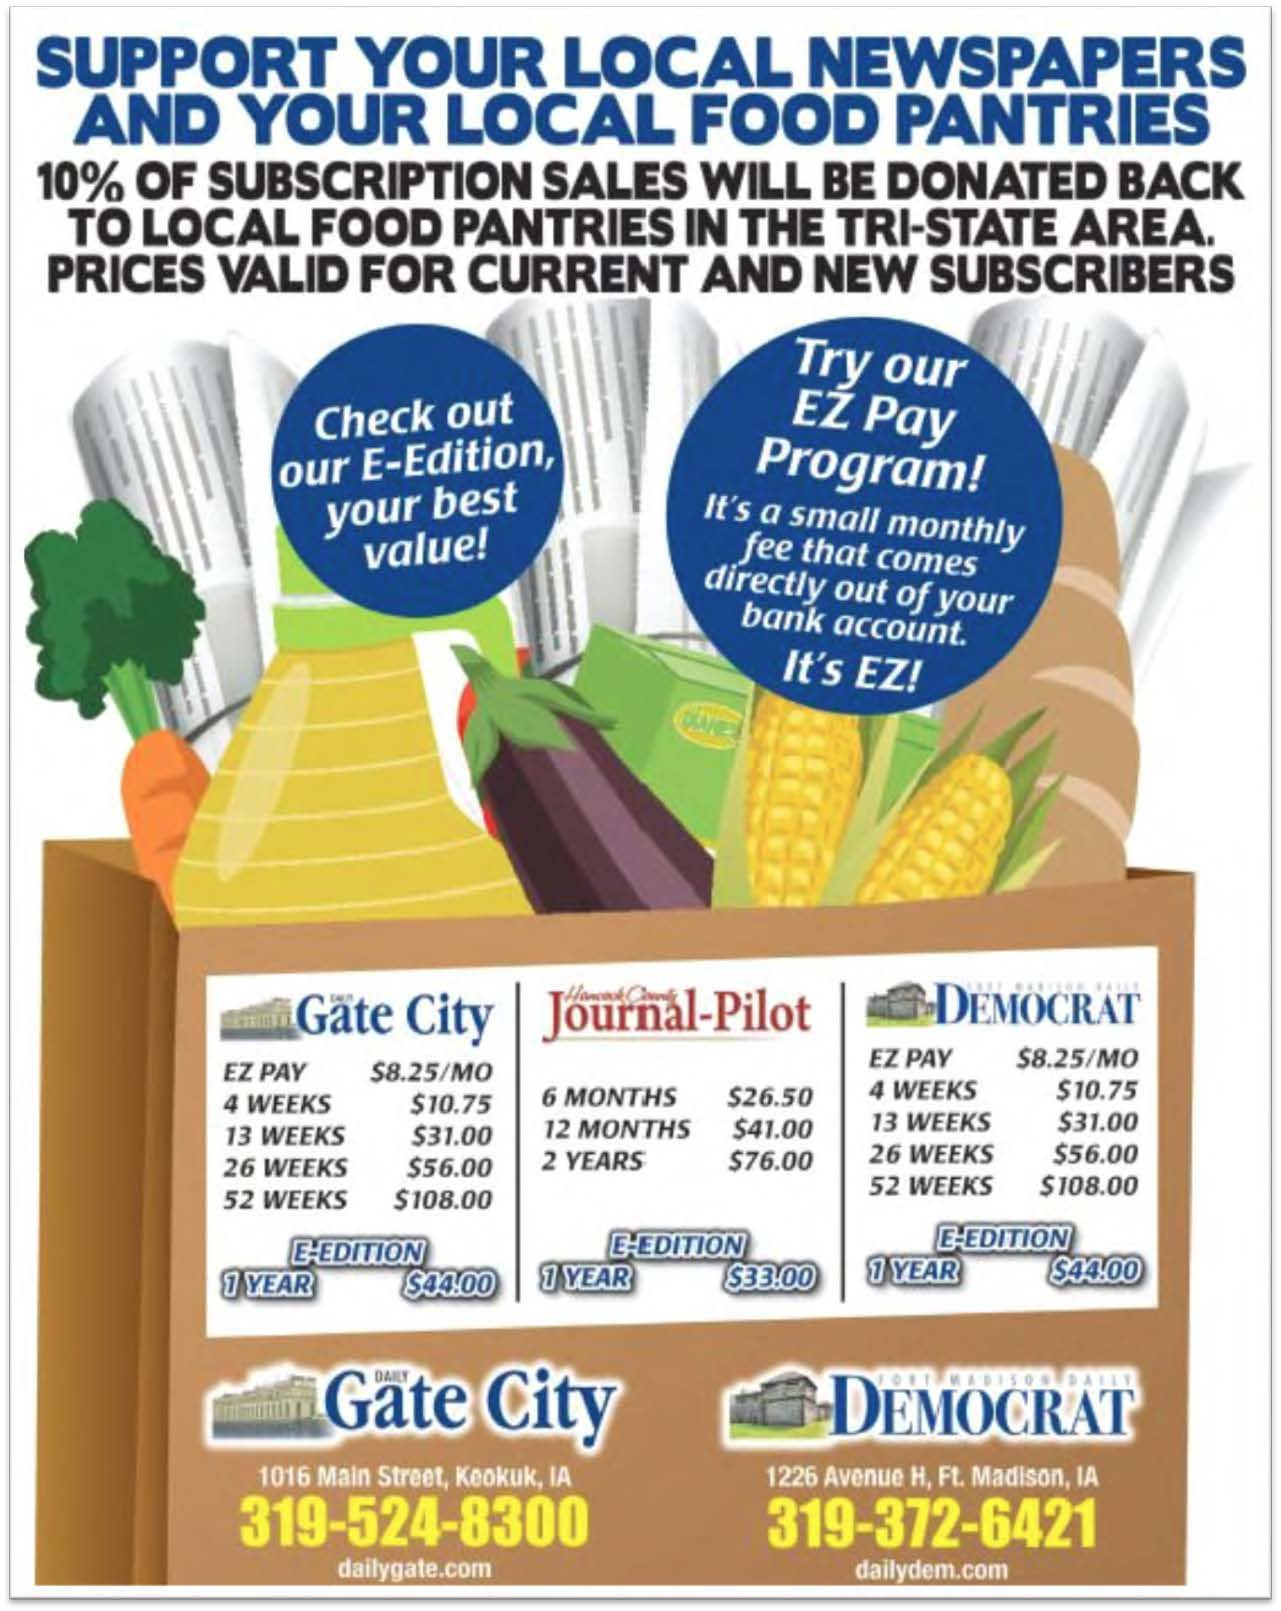 Idea #43 of 50 Days of Ideas! SUPPORT YOUR LOCAL NEWSPAPERS & LOCAL FOOD PANTRIES!